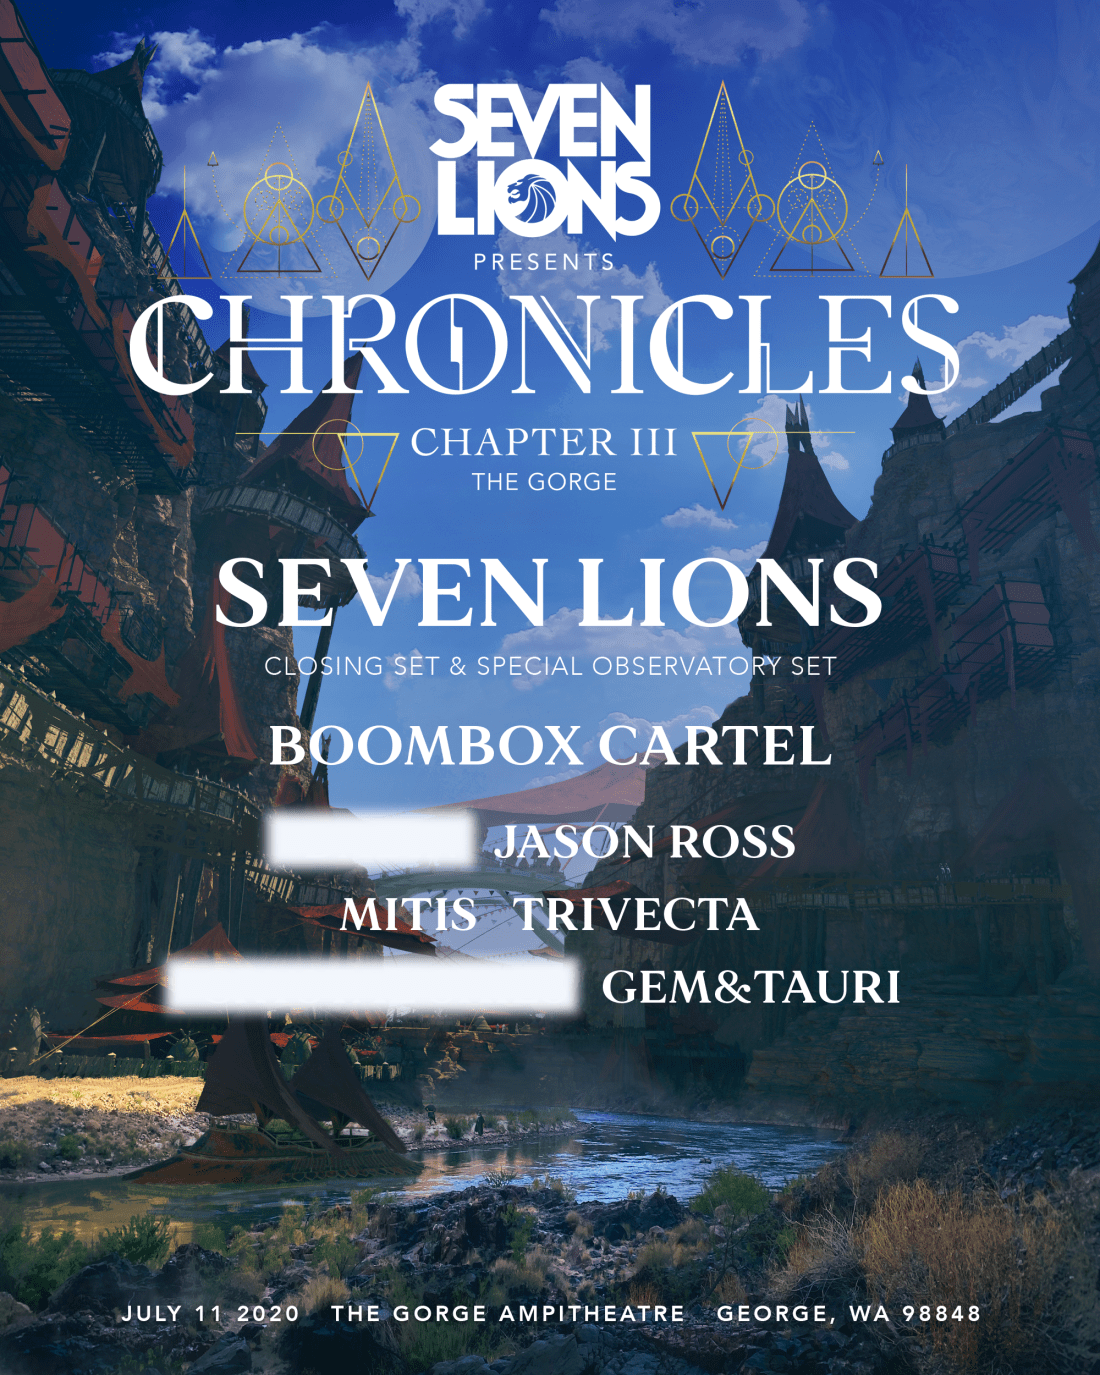 seven-lions-chronicles-3-lineup-poster-consicous-electronic